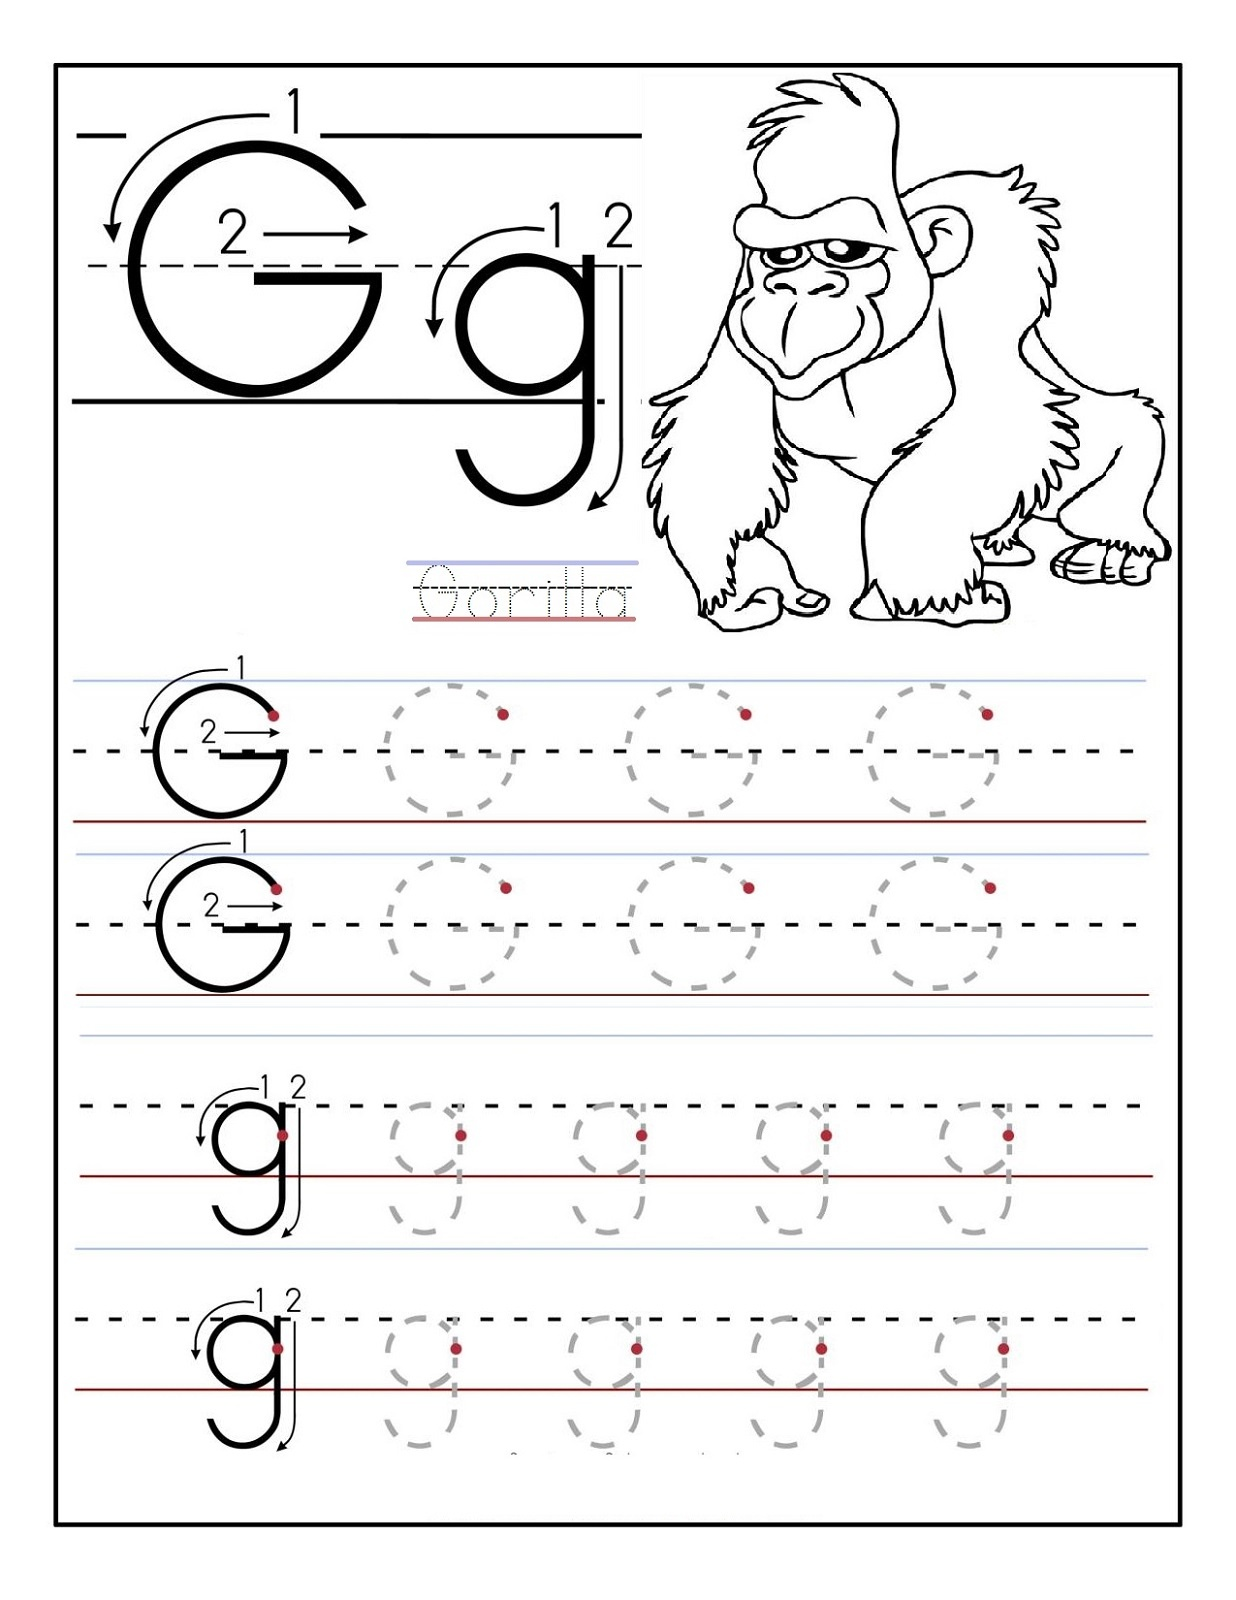 Free Printable Activities For Kids | Educative Printable - Free Printable Activities For Kids